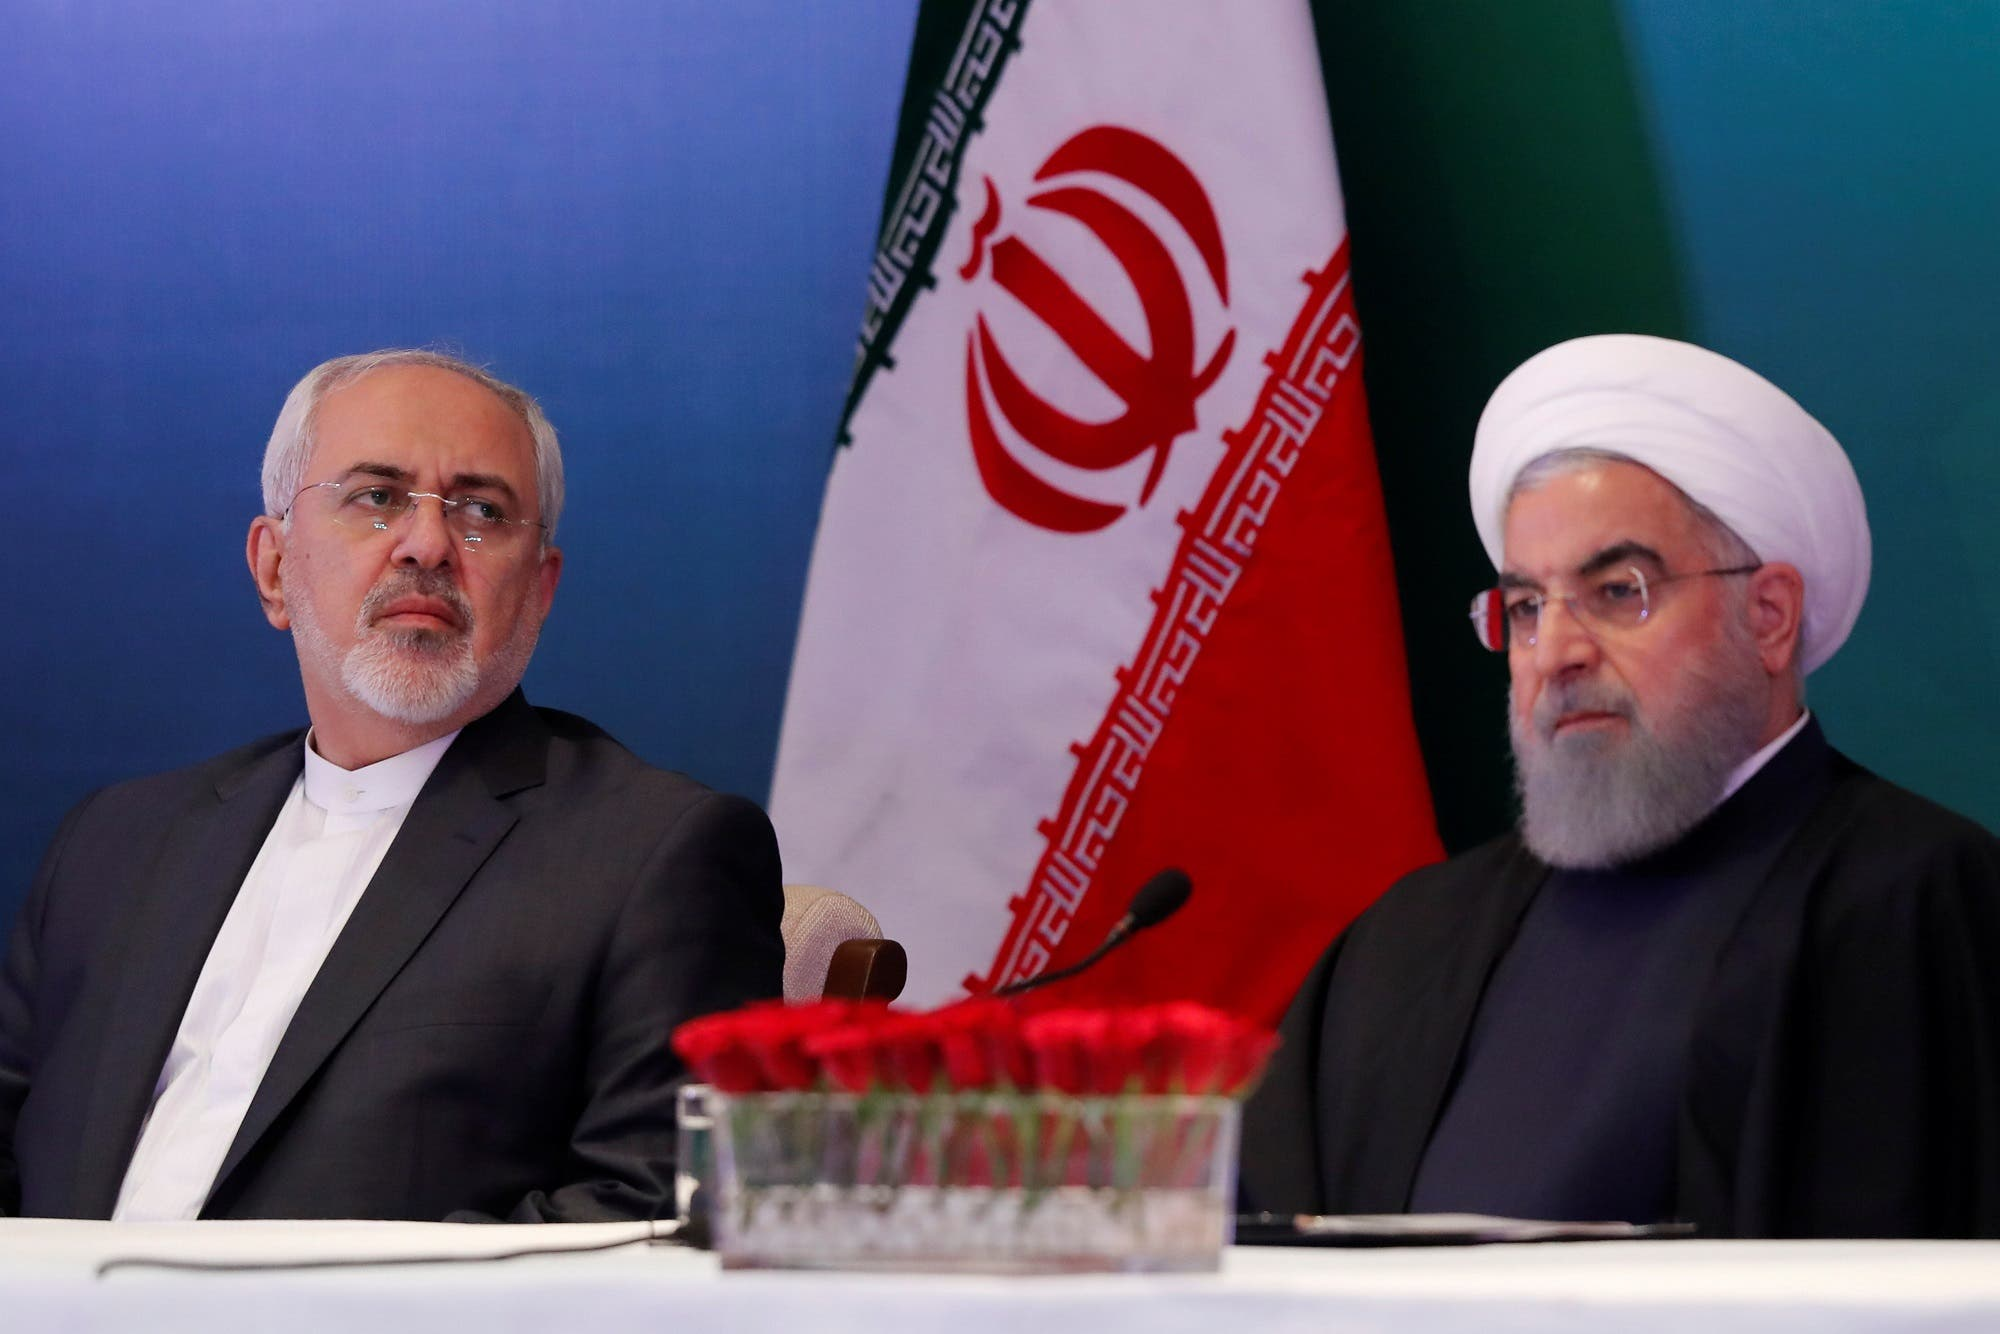 Iranian President Hassan Rouhani (R) and Foreign Minister Mohammad Javad Zarif attend a meeting in Hyderabad, India, on February 15, 2018. (Reuters)